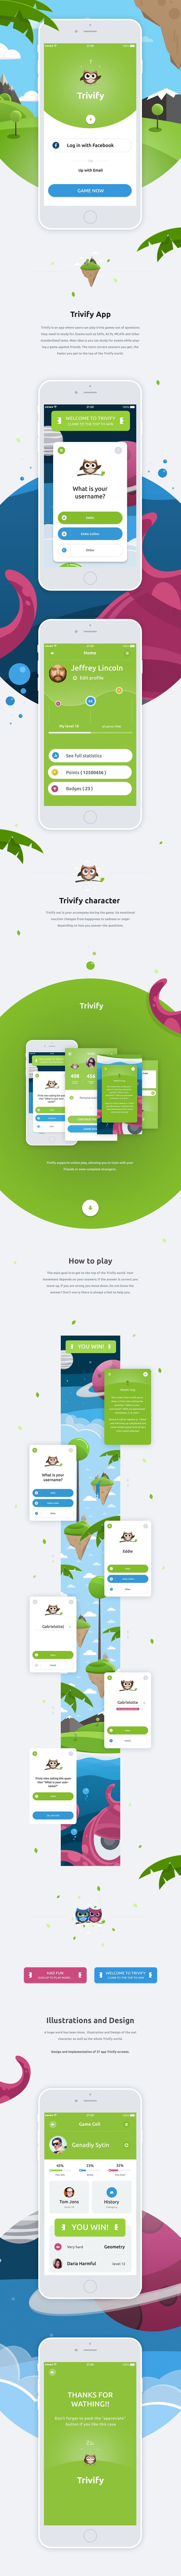 Trivify mobile app on Behance